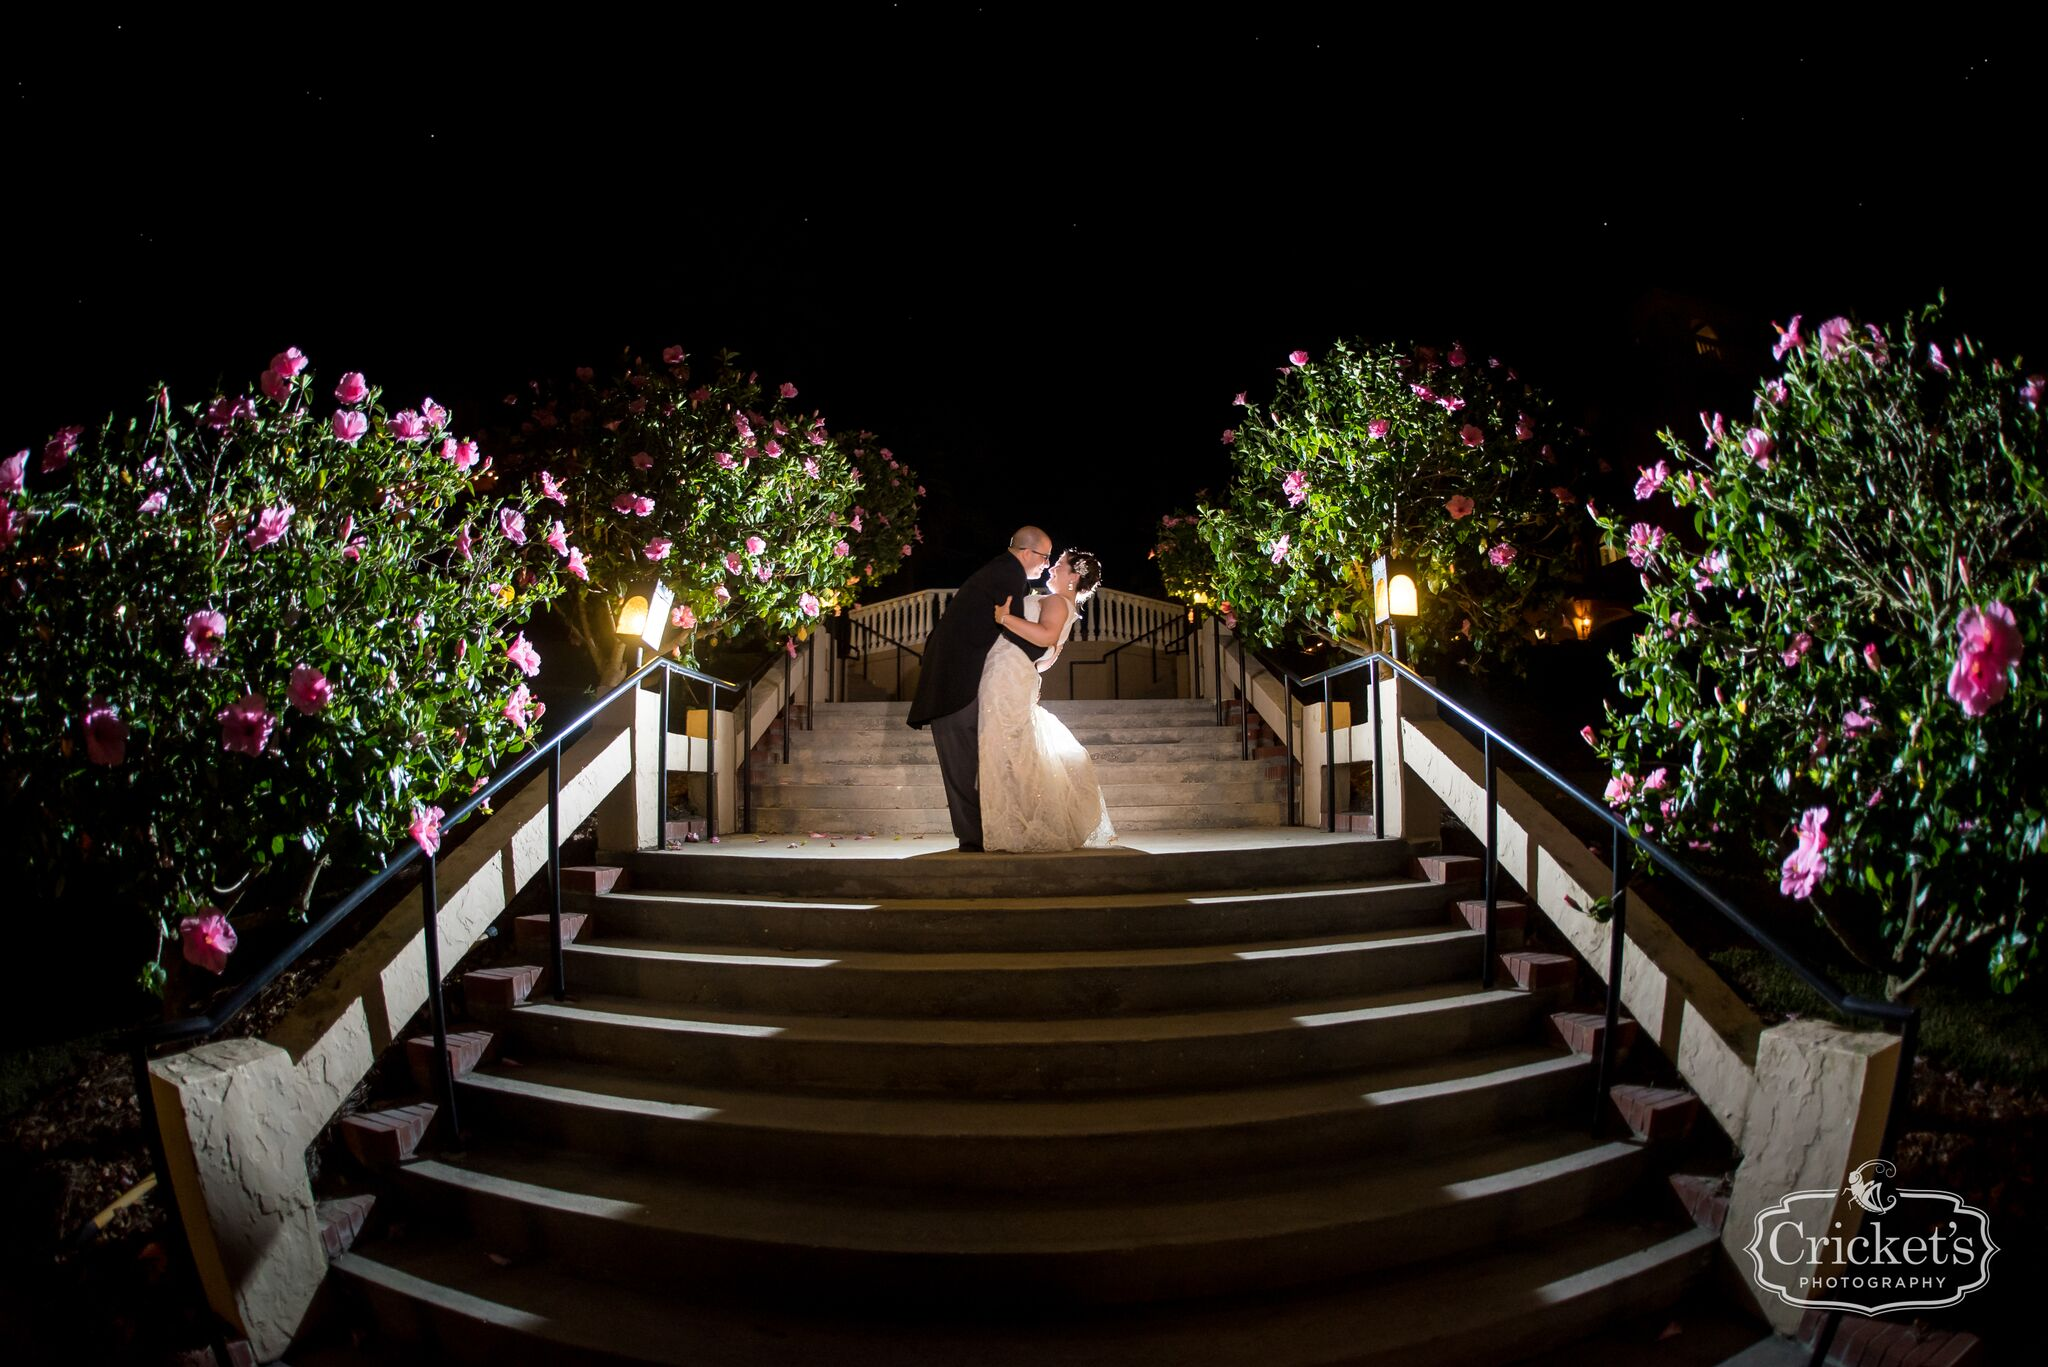 Bride and groom dramatic staircase shot at nighttime